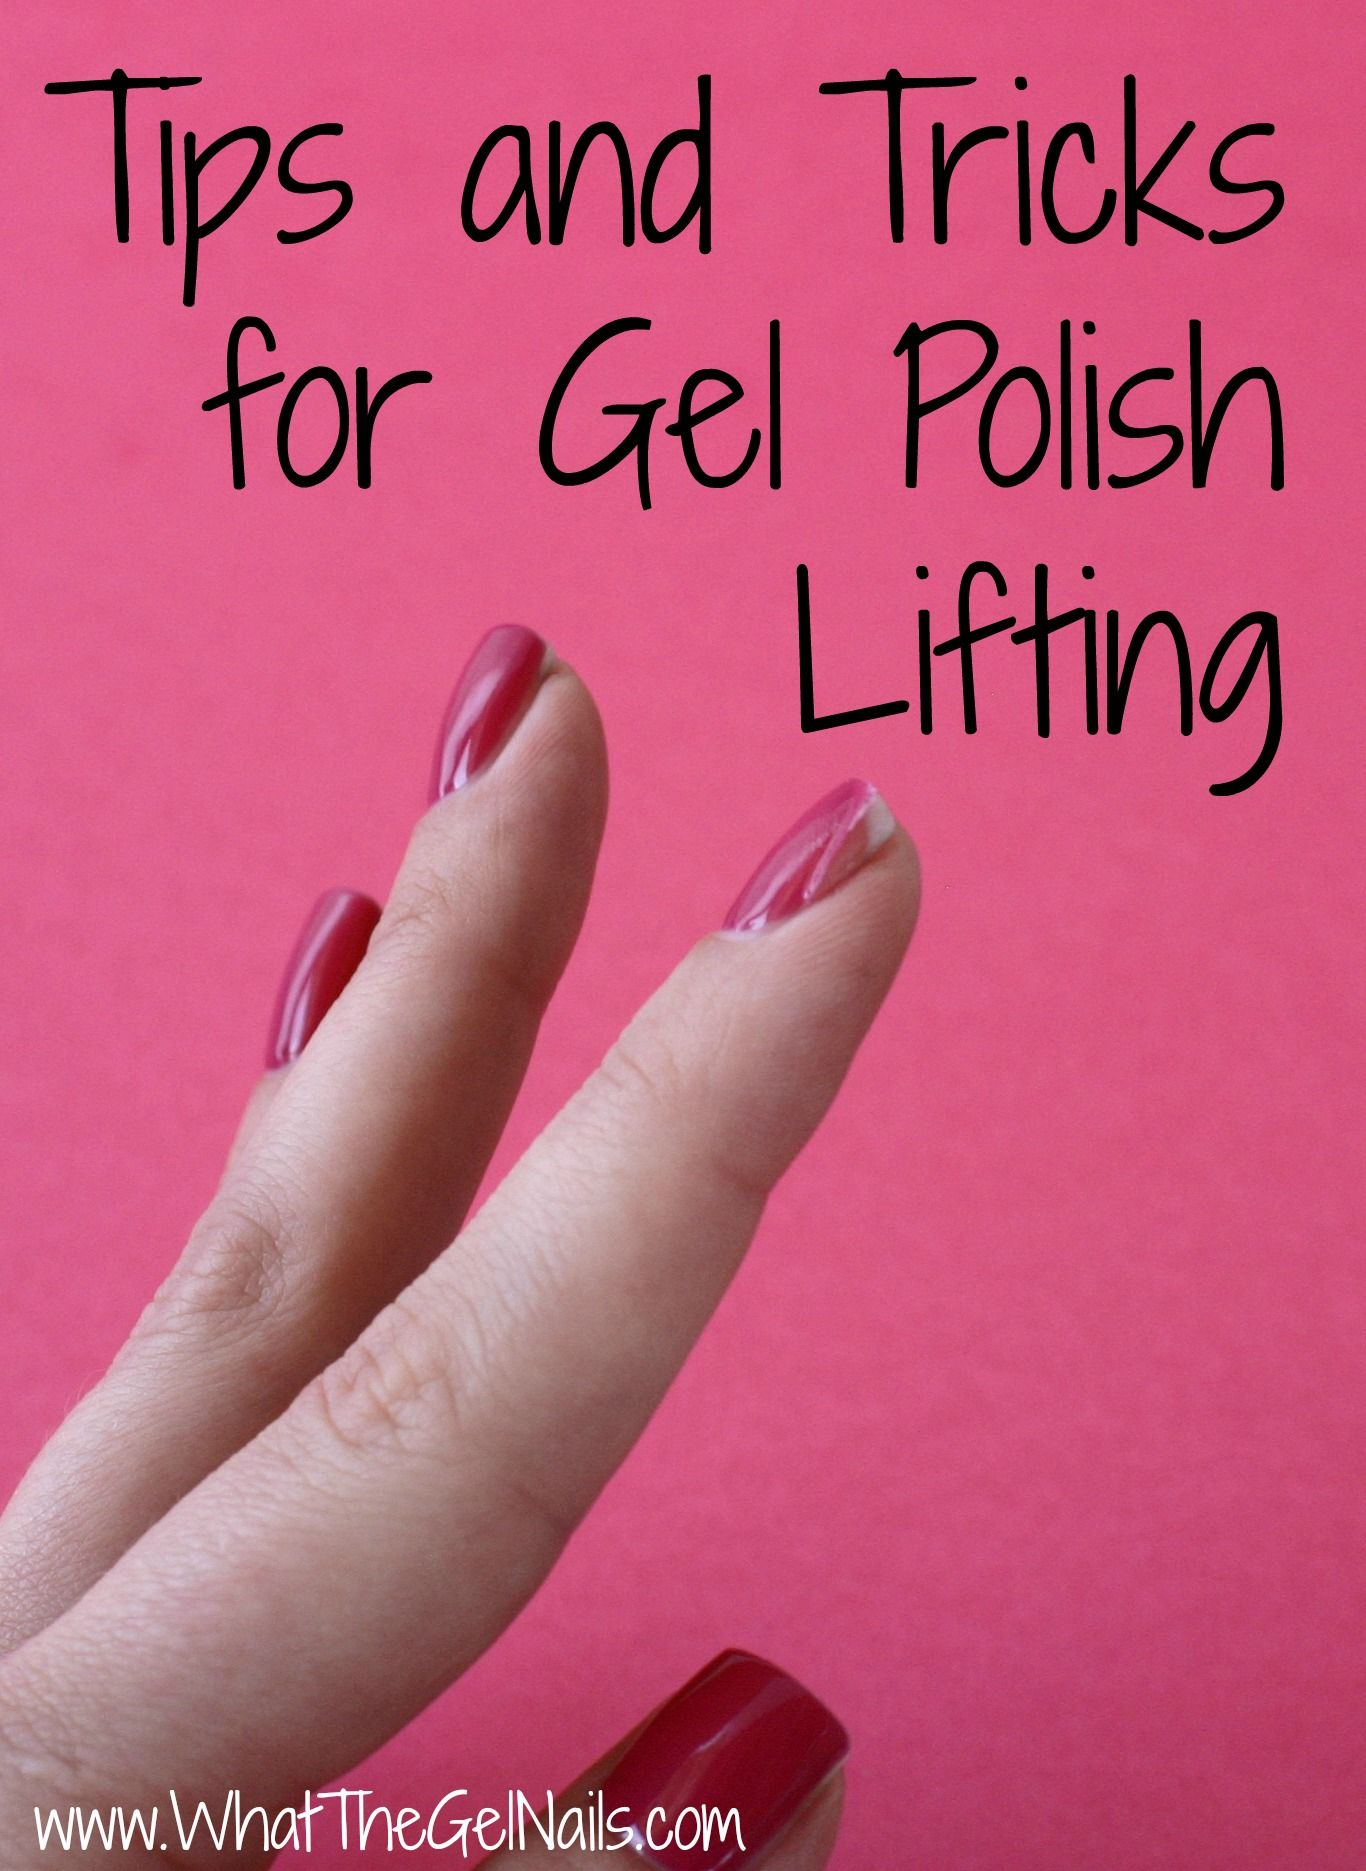 Tips and tricks for gel polish lifting. | make-up and nails | Pinterest